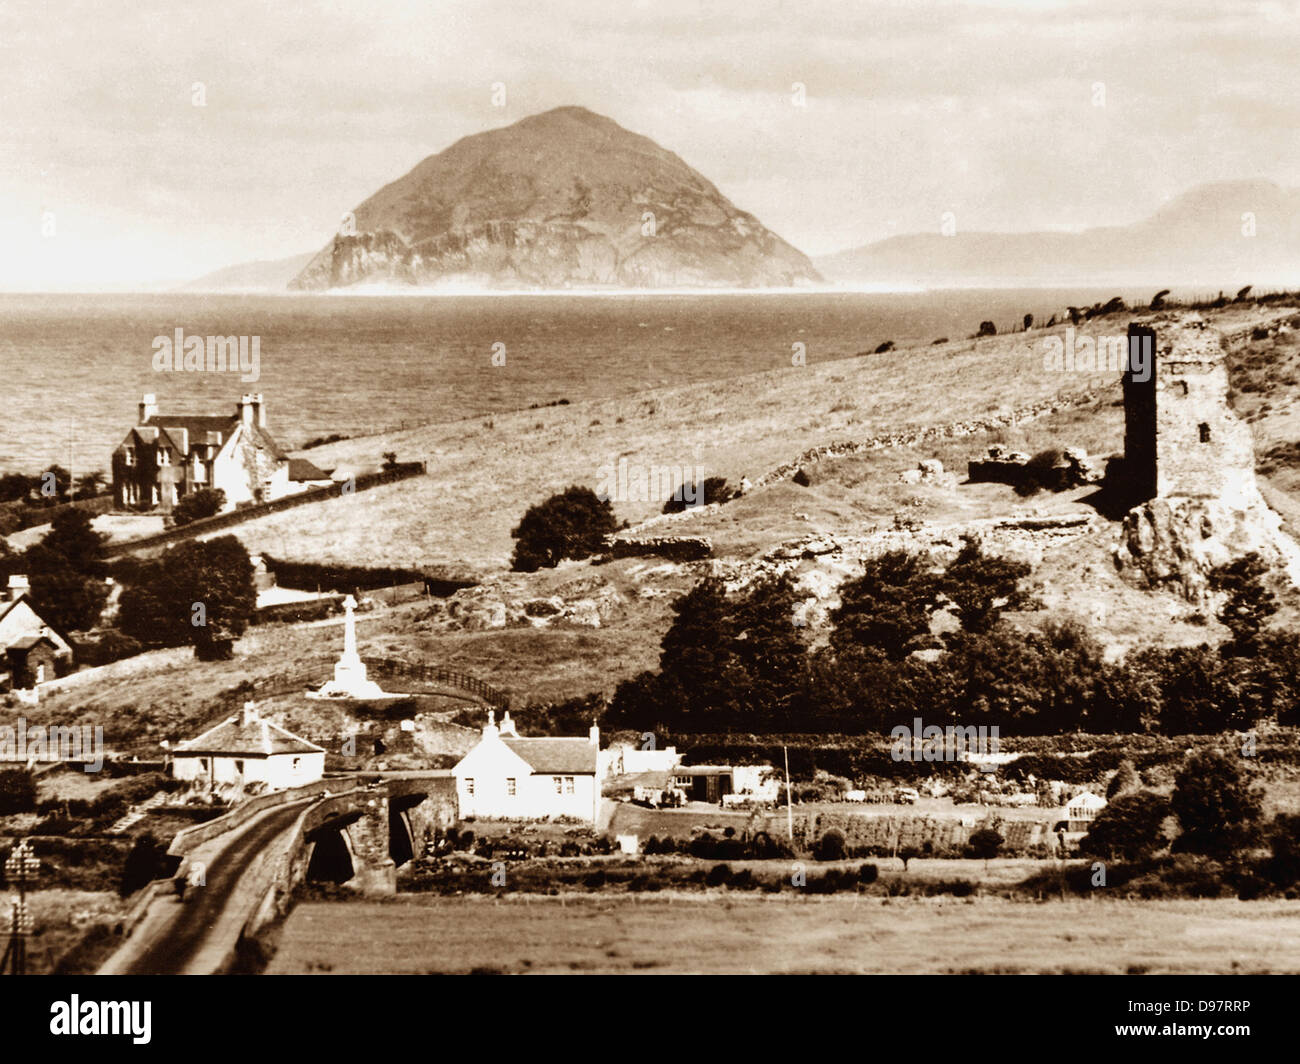 Ballantrae Bridgend and Ailsa Craig early 1900s - Stock Image